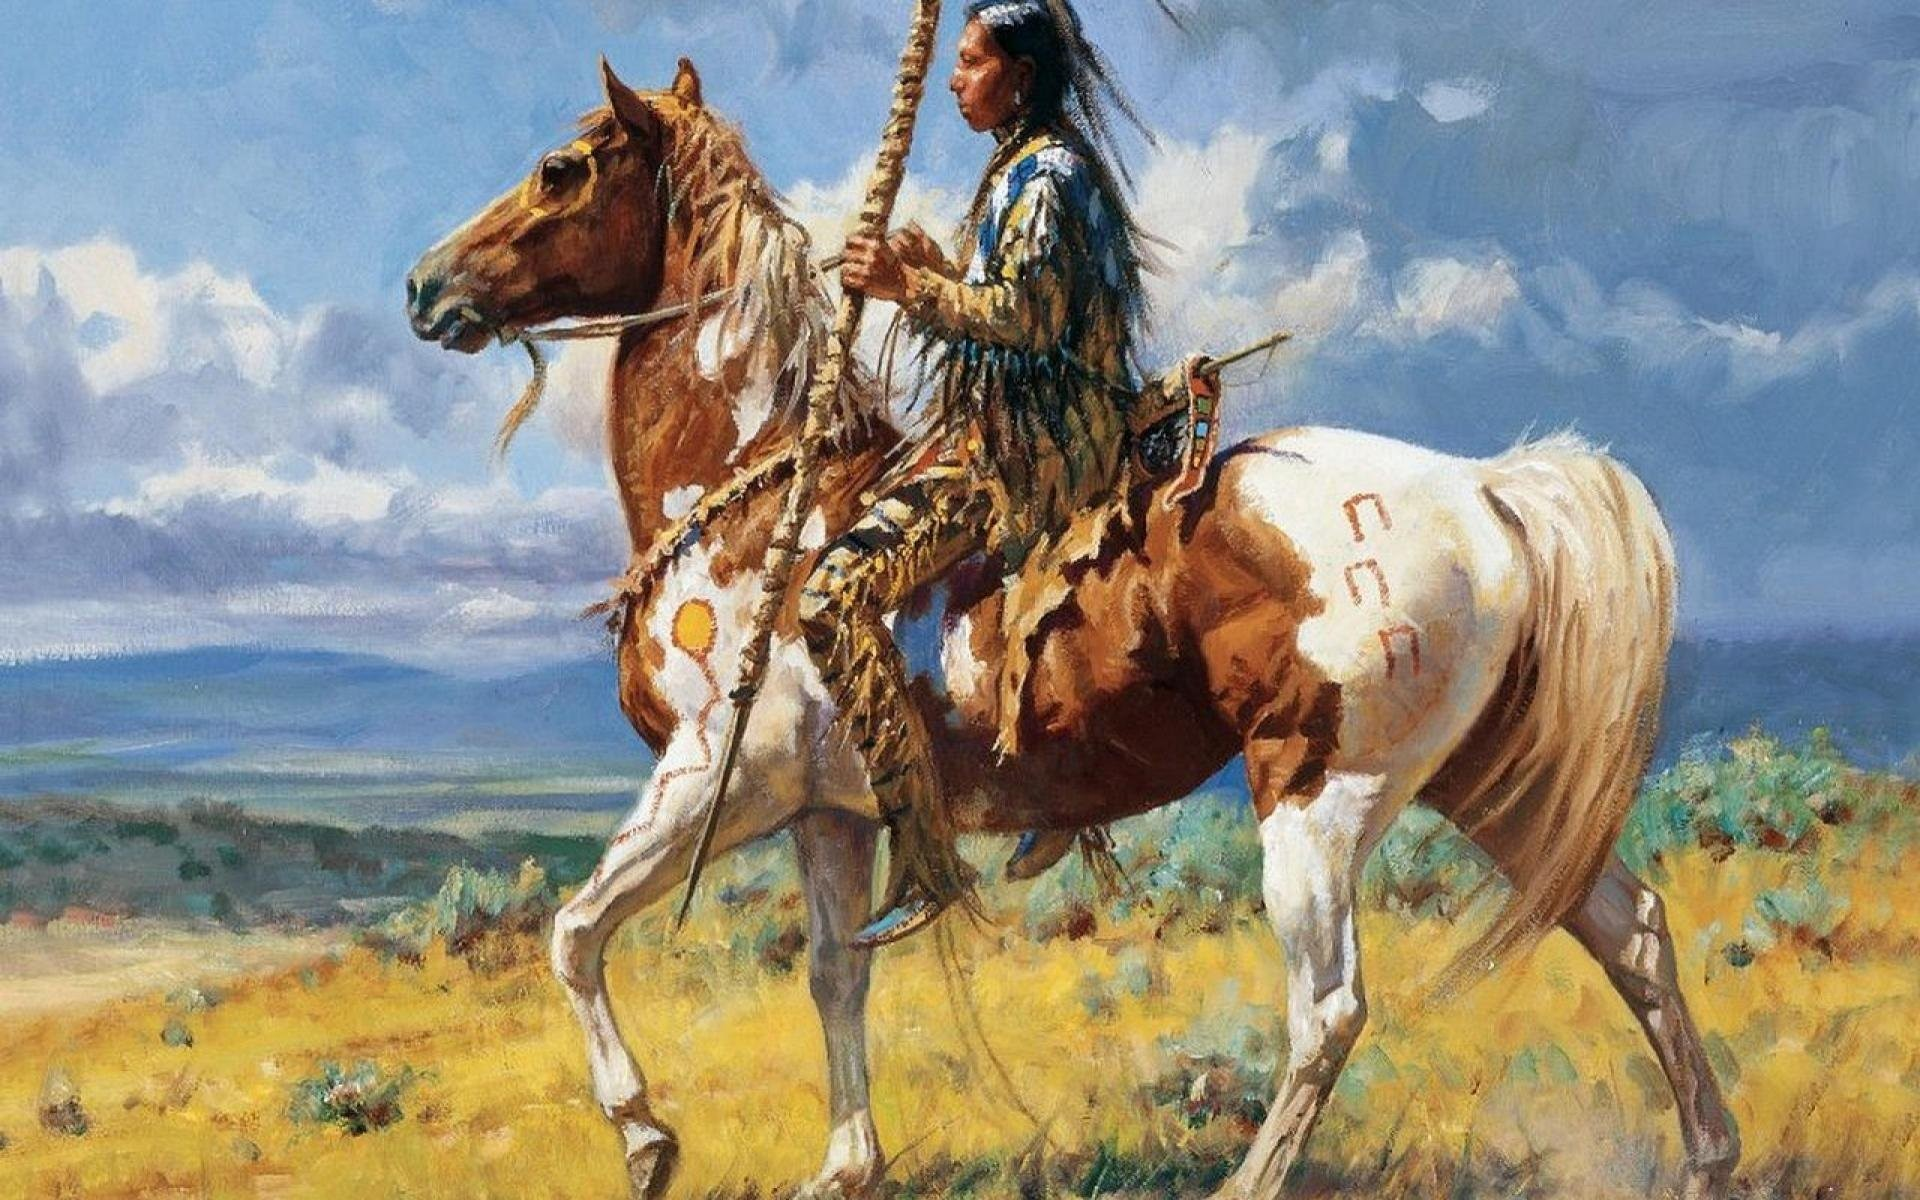 1920x1200 Native american indian western (53) wallpaper |  | 416409 |  WallpaperUP